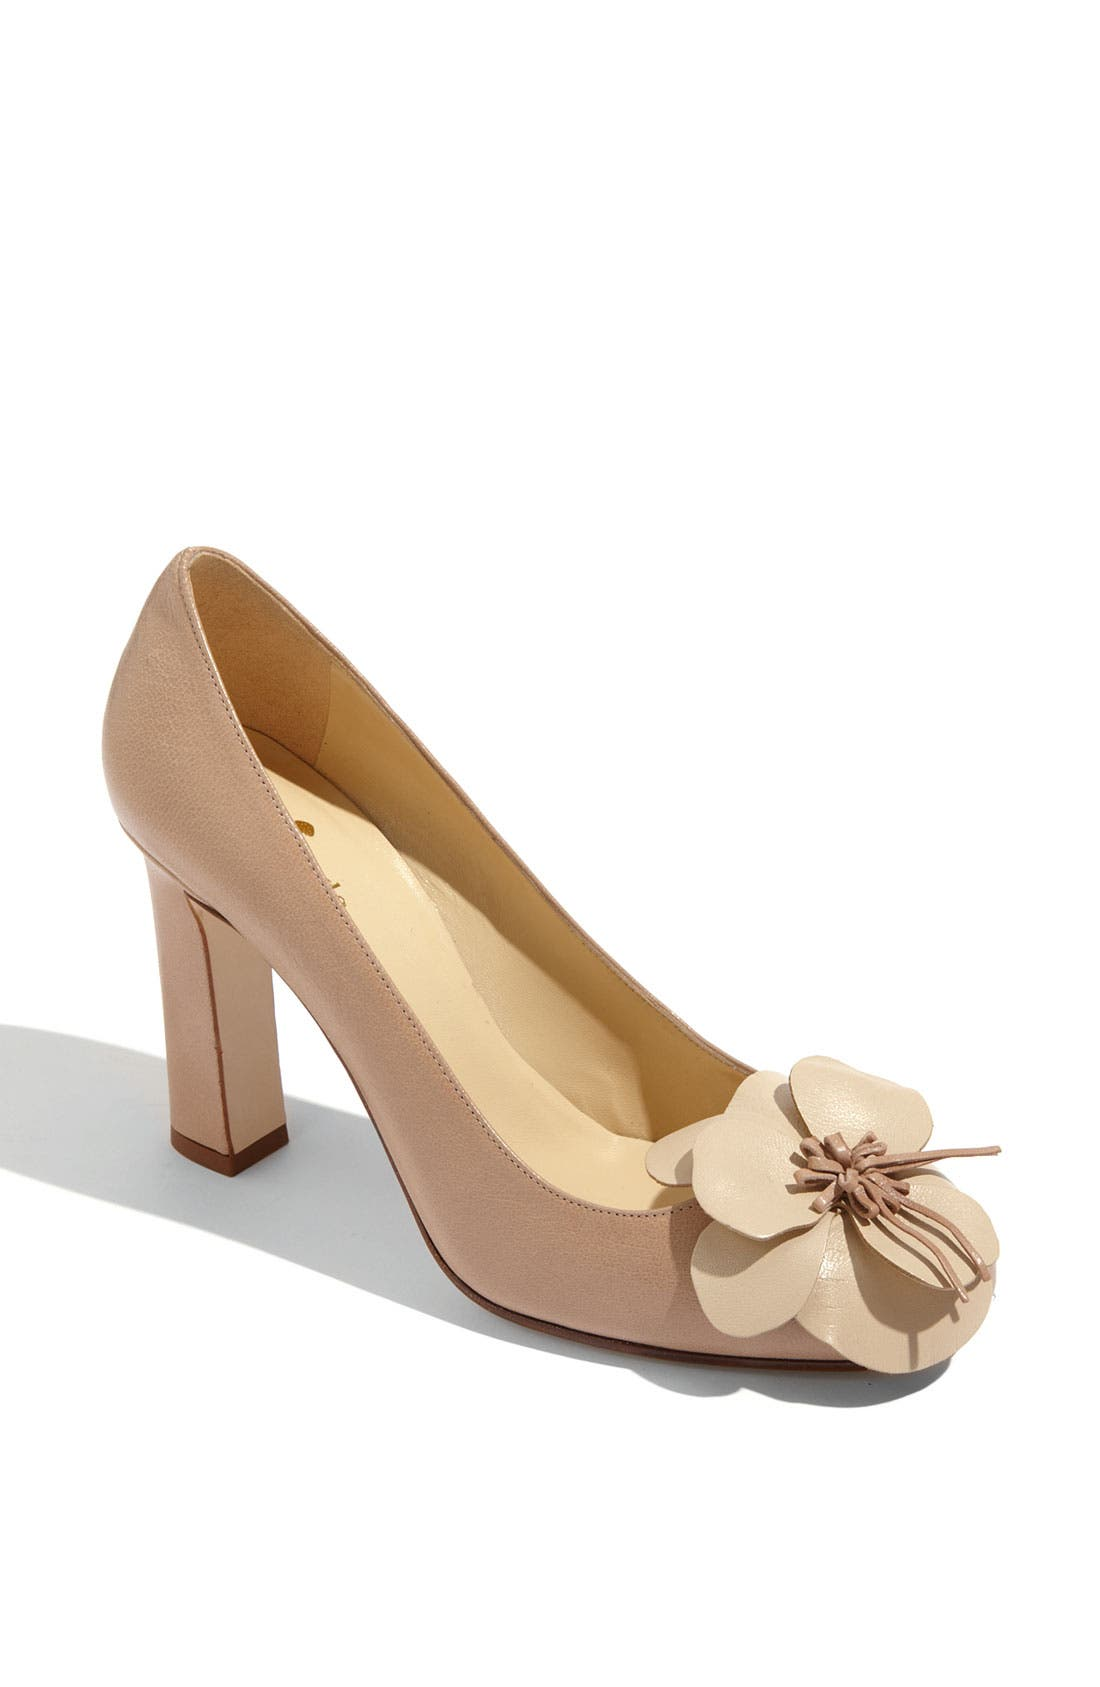 Alternate Image 1 Selected - kate spade new york 'zaria' pump